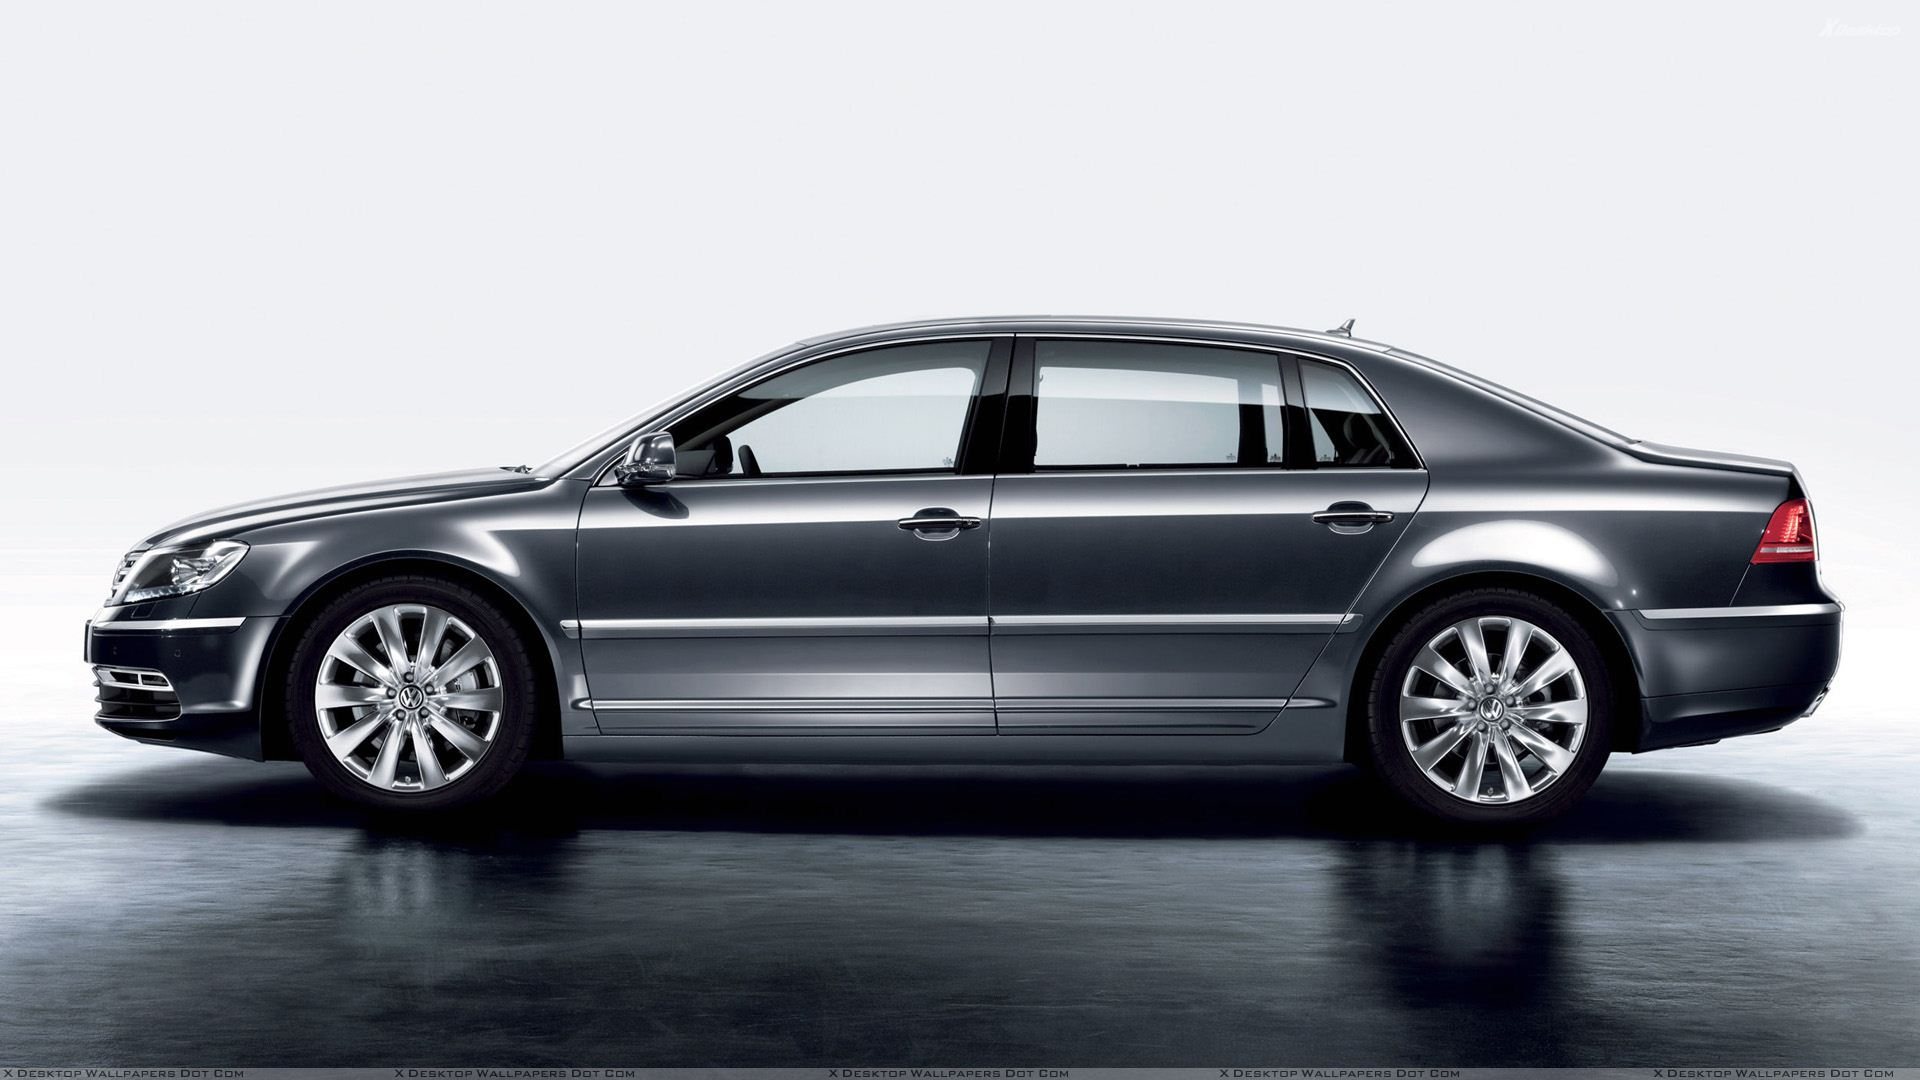 volkswagen phaeton wallpapers photos images in hd. Black Bedroom Furniture Sets. Home Design Ideas